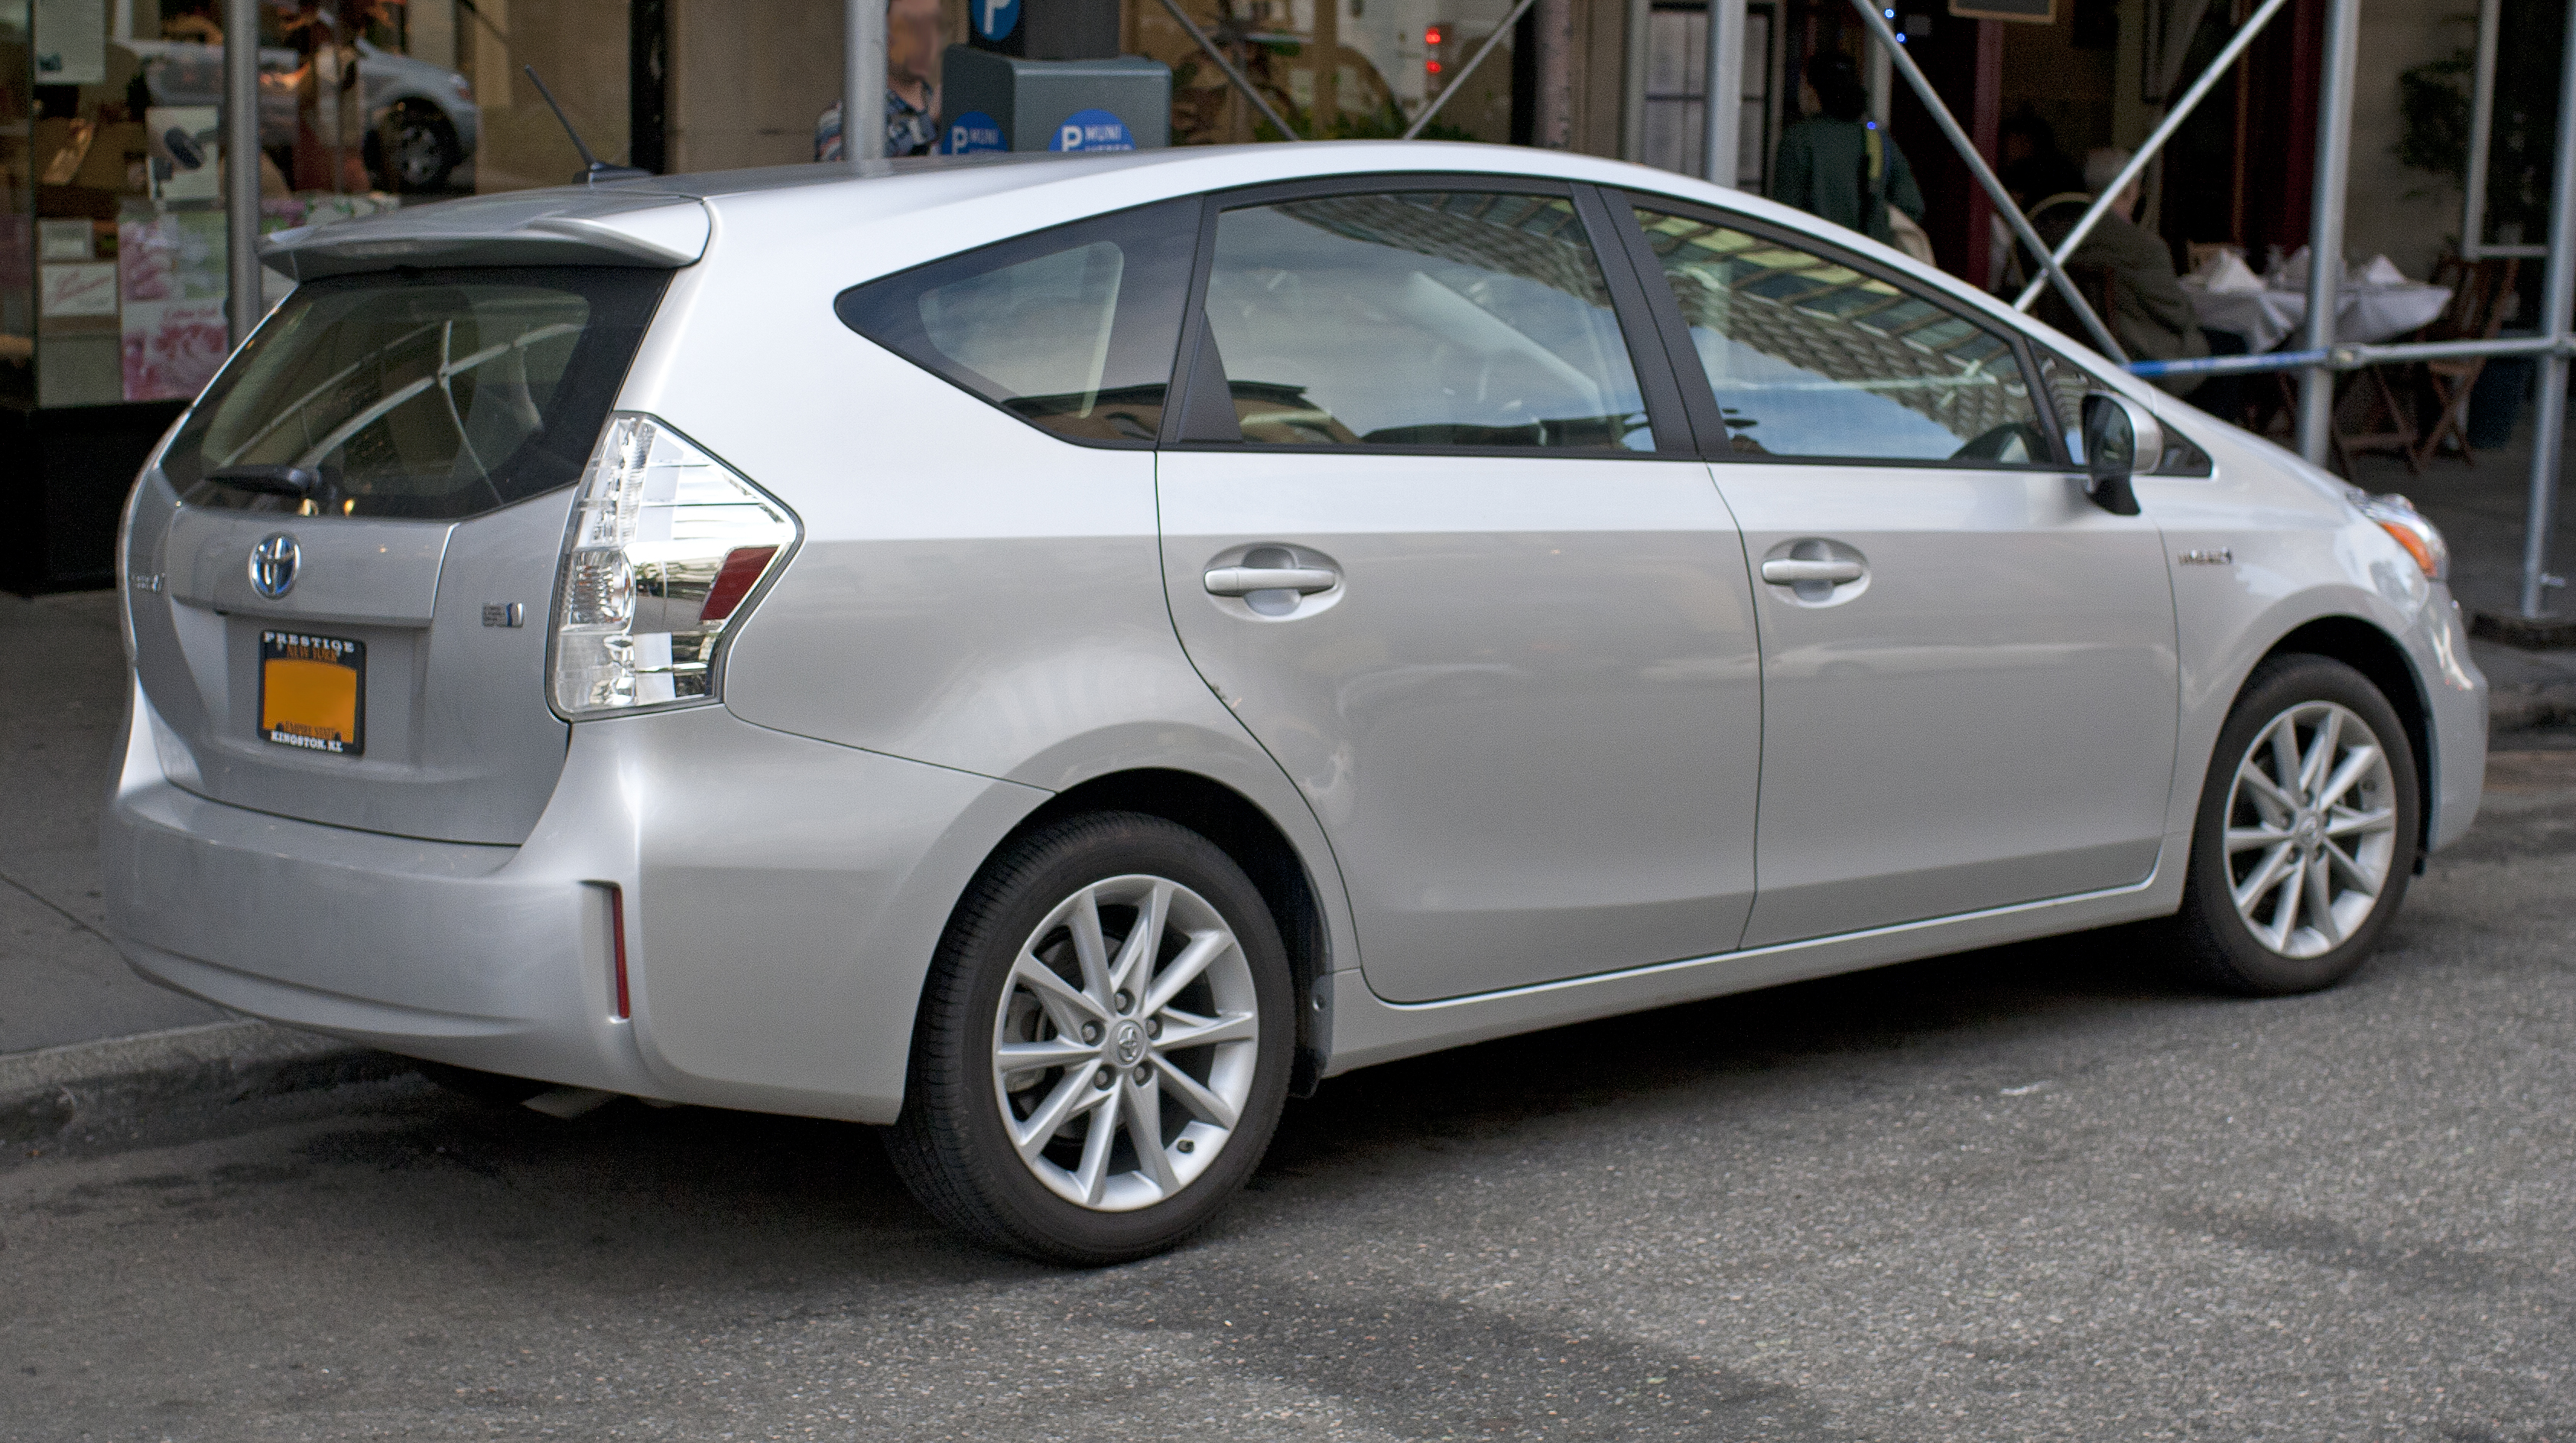 2012 toyota prius v information and photos zombiedrive. Black Bedroom Furniture Sets. Home Design Ideas